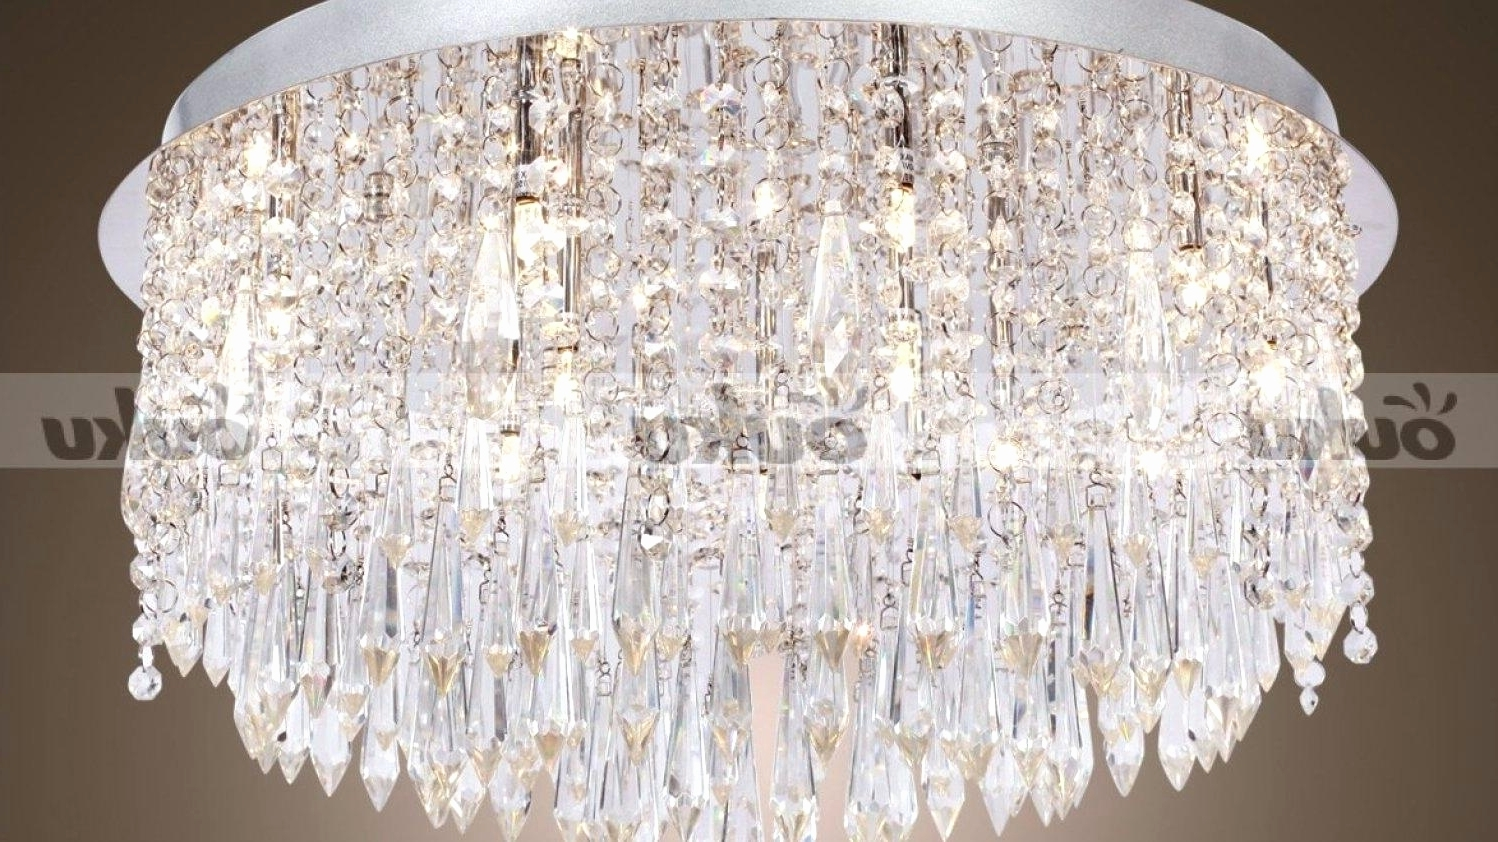 28 Elegant Chandeliers For Low Ceilings Images (View 16 of 20)